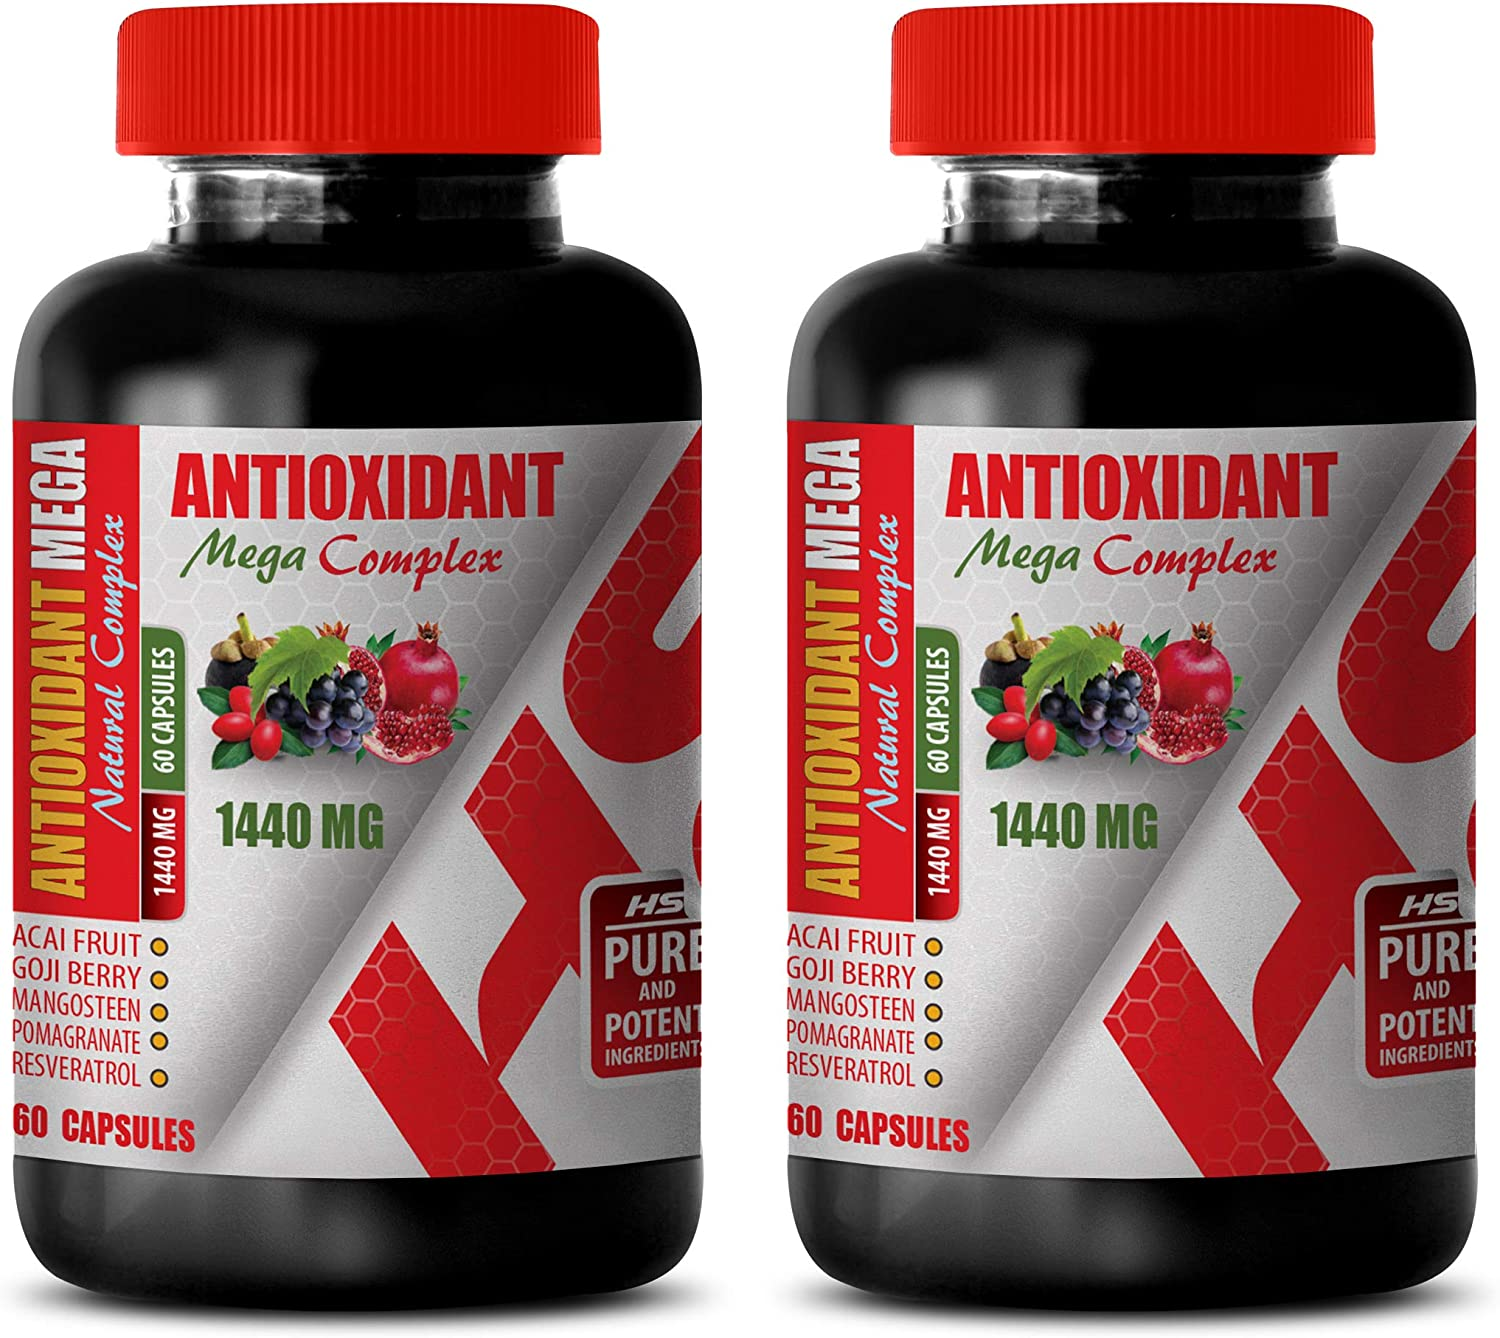 Heart Support Supplement - Max Free Shipping Cheap Bargain Gift 86% OFF ANTIOXIDANT Complex Natural 1440 MEGA